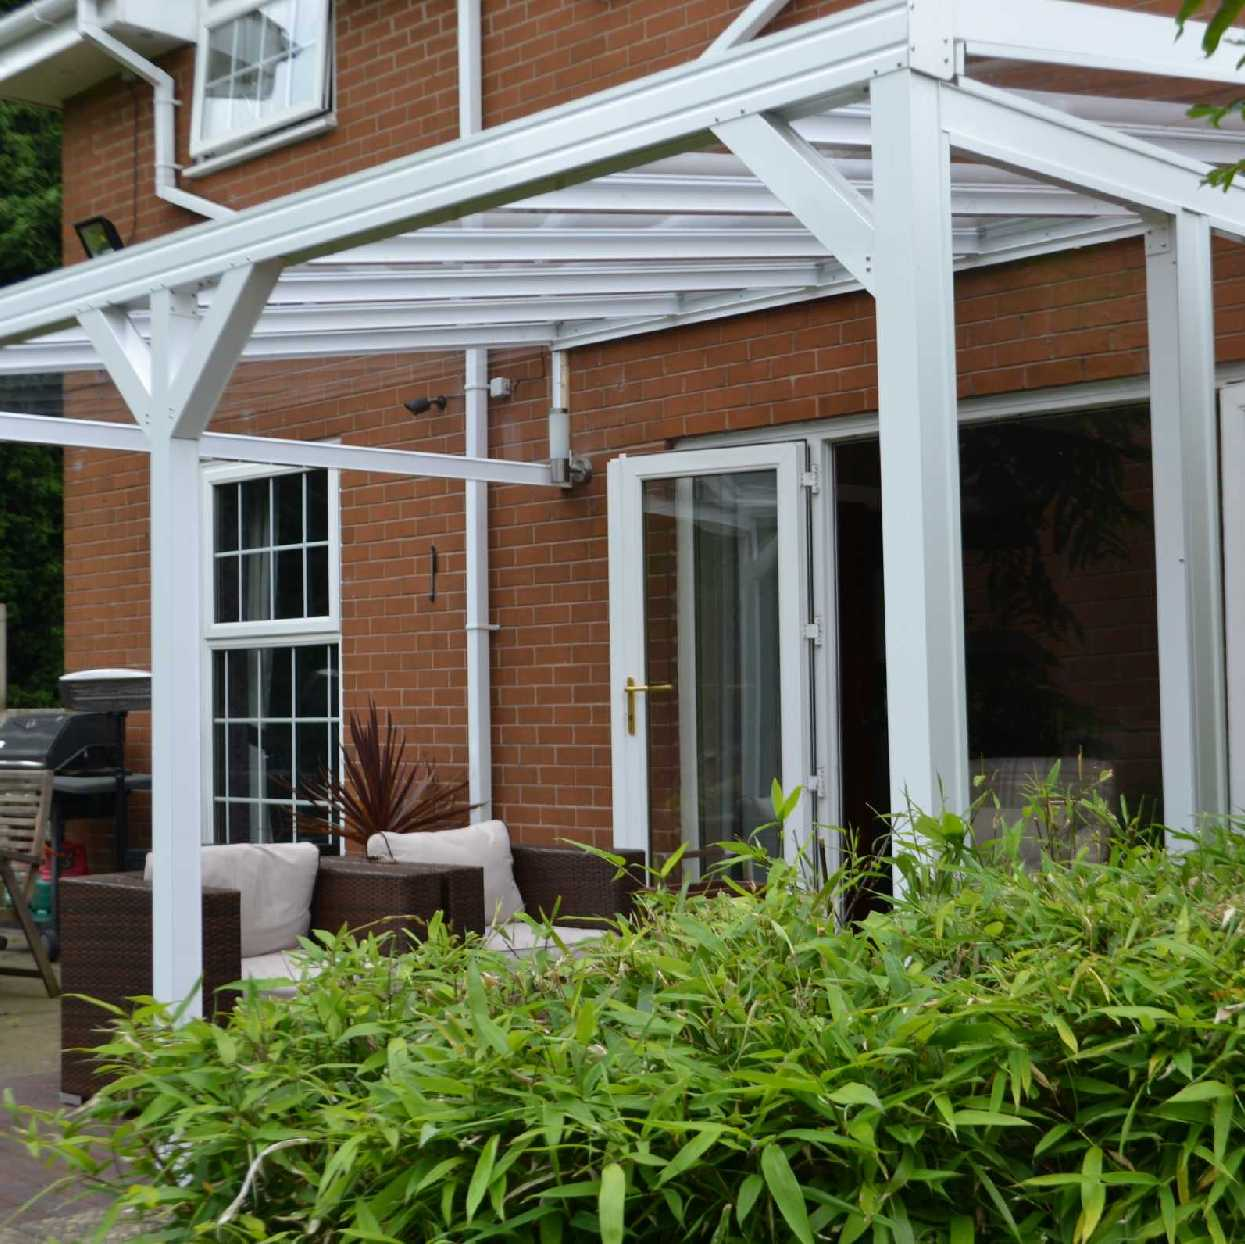 Omega Smart Lean-To Canopy with 6mm Glass Clear Plate Polycarbonate Glazing - 4.2m (W) x 3.5m (P), (3) Supporting Posts from Omega Build